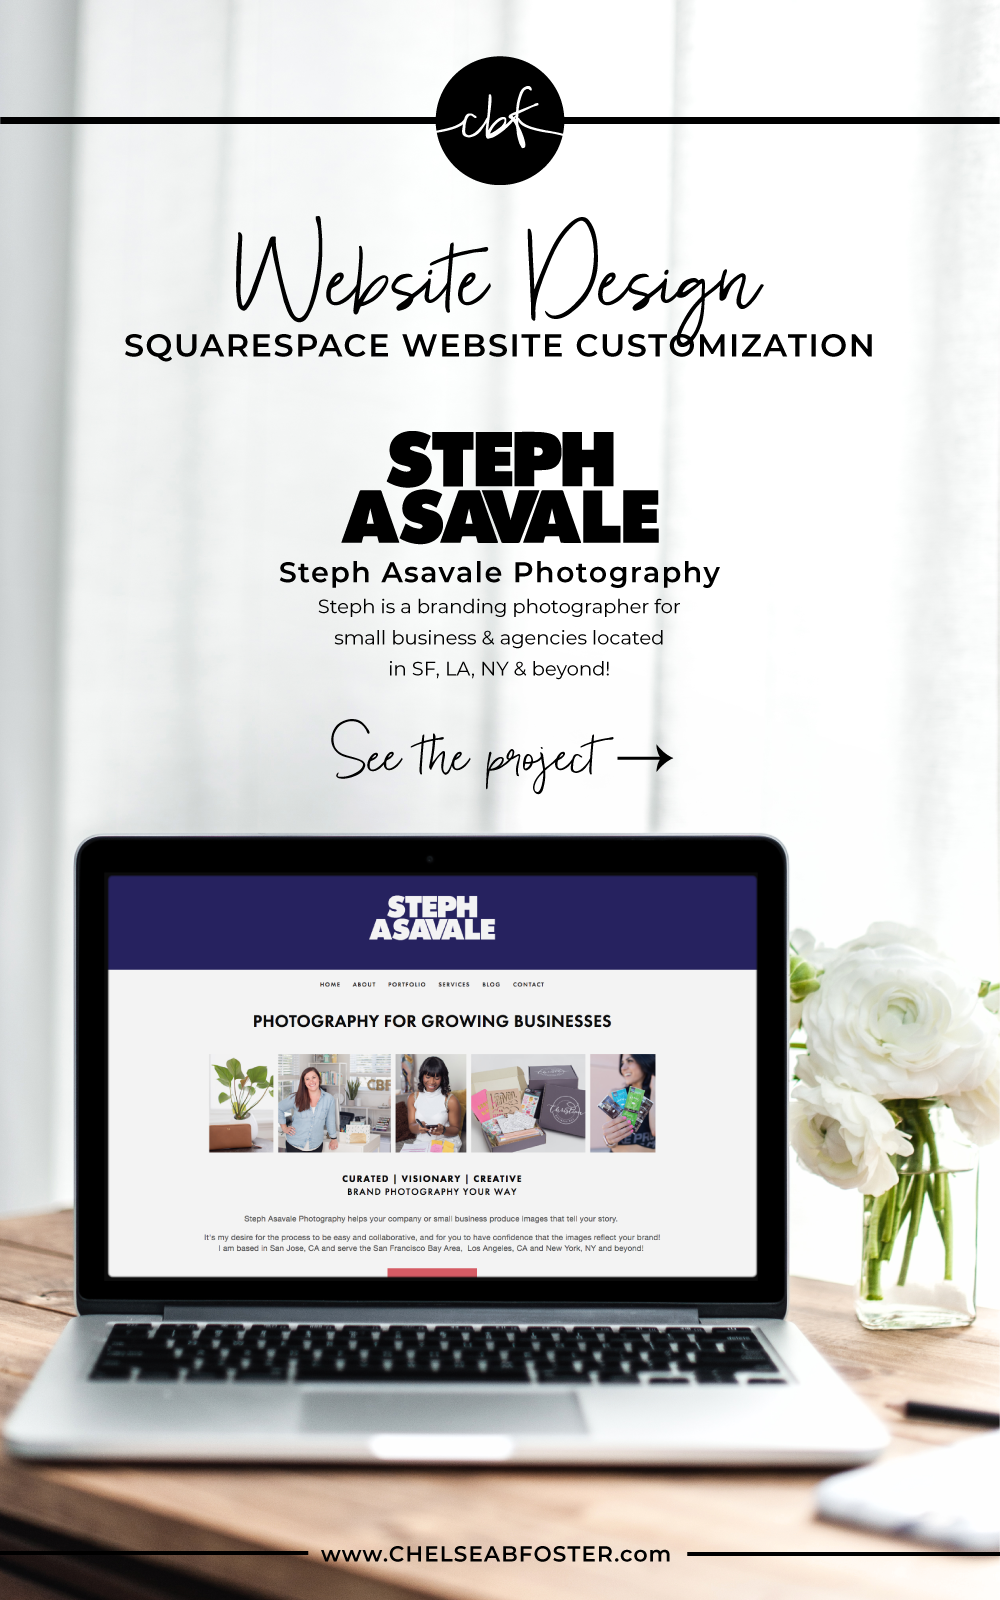 Squarespace Website Design Customization | ChelseaBFoster.com | Customization of website design on Squarespace for a branding photographer serving San Francisco Bay Area, Los Angeles, New York City, and more!